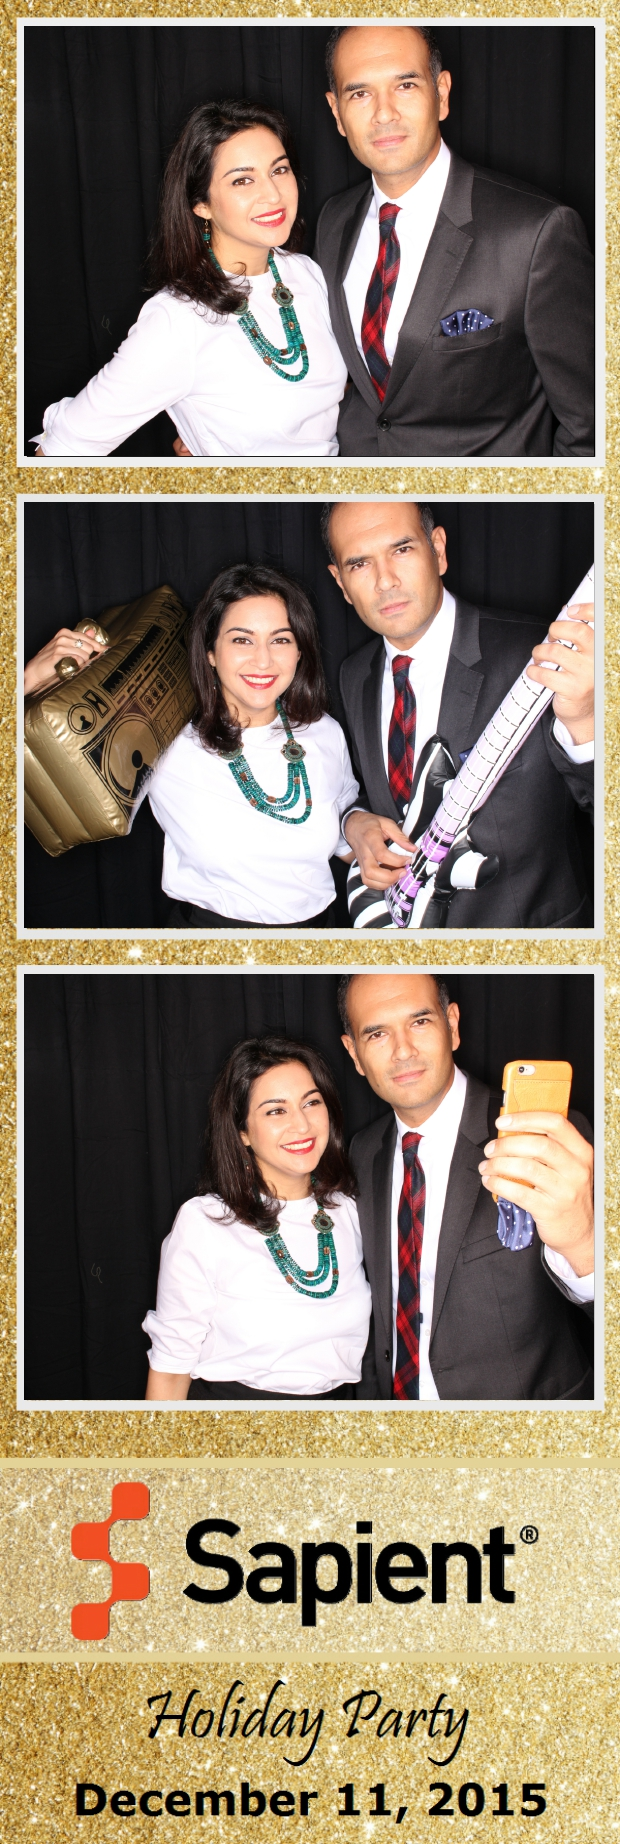 Guest House Events Photo Booth Sapient Holiday Party (44).jpg